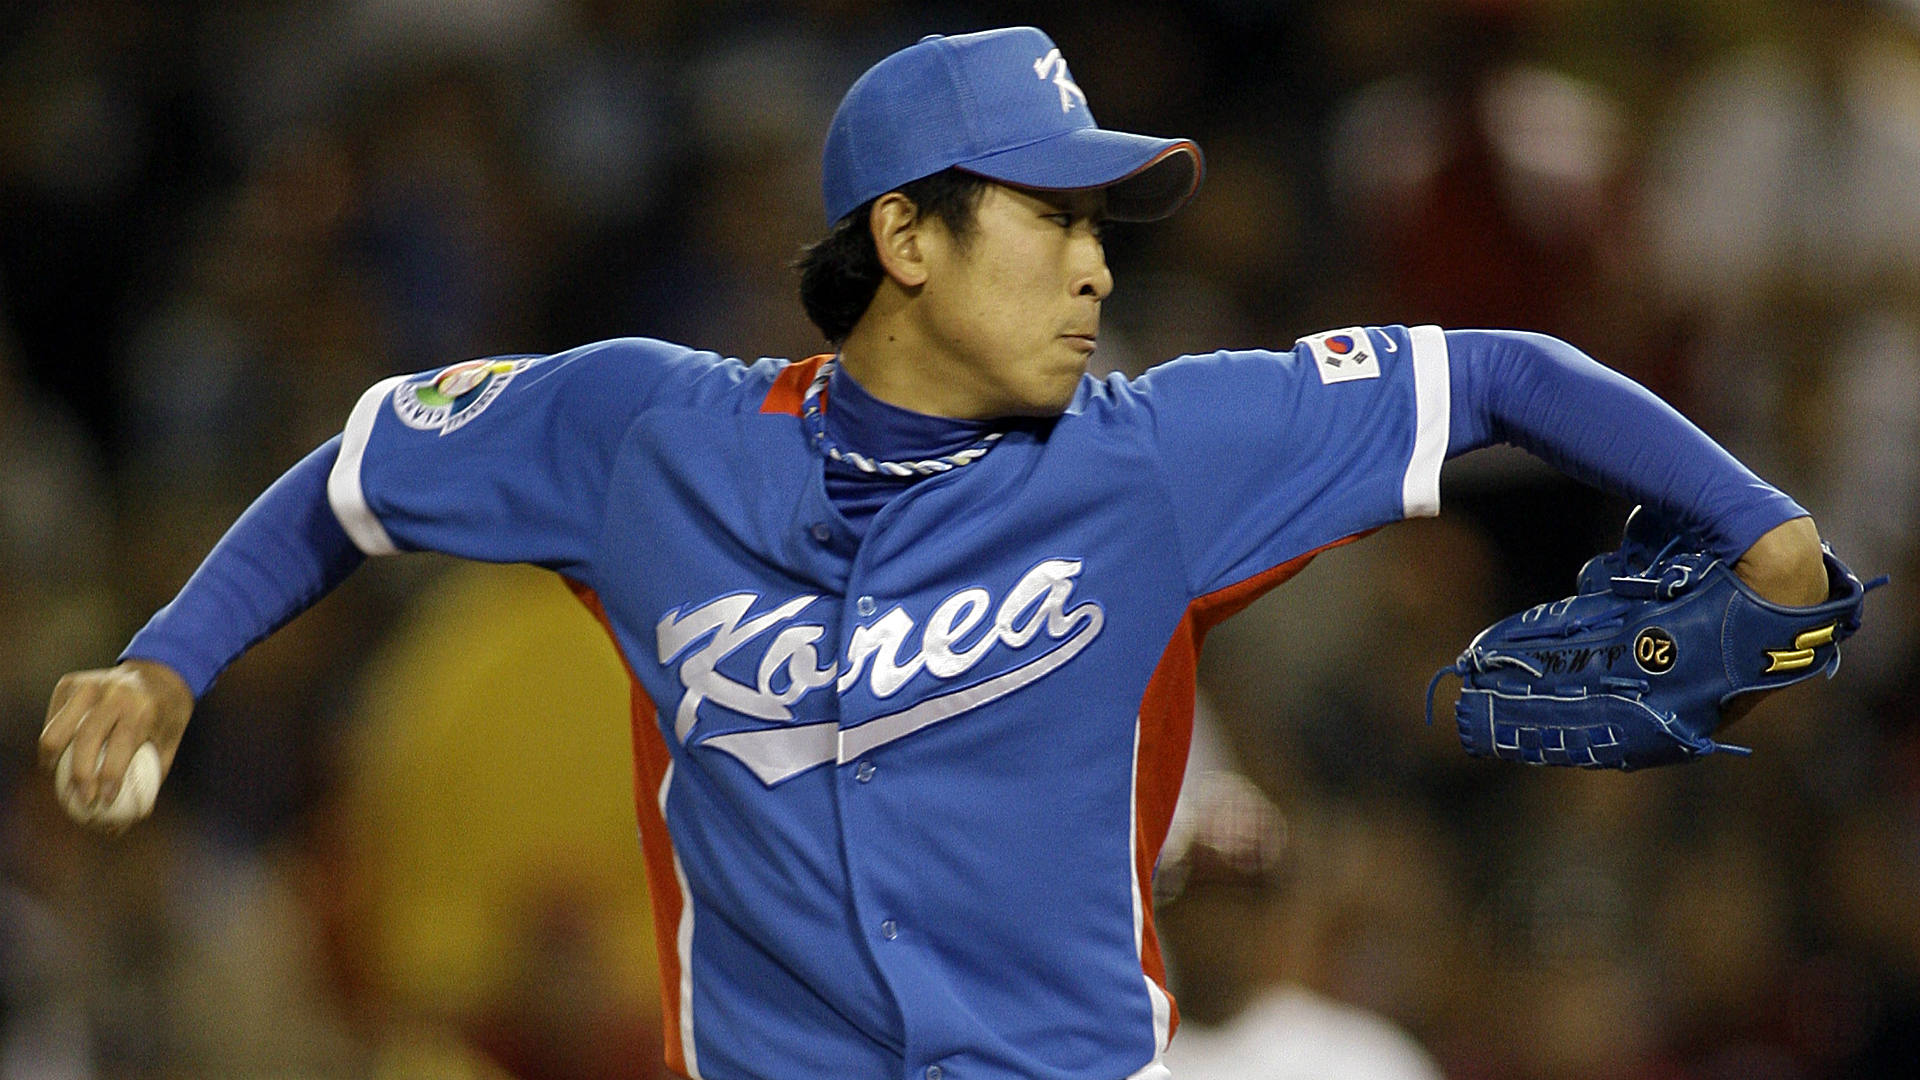 Fantasy baseball owners should temper expectations for Suk-min Yoon